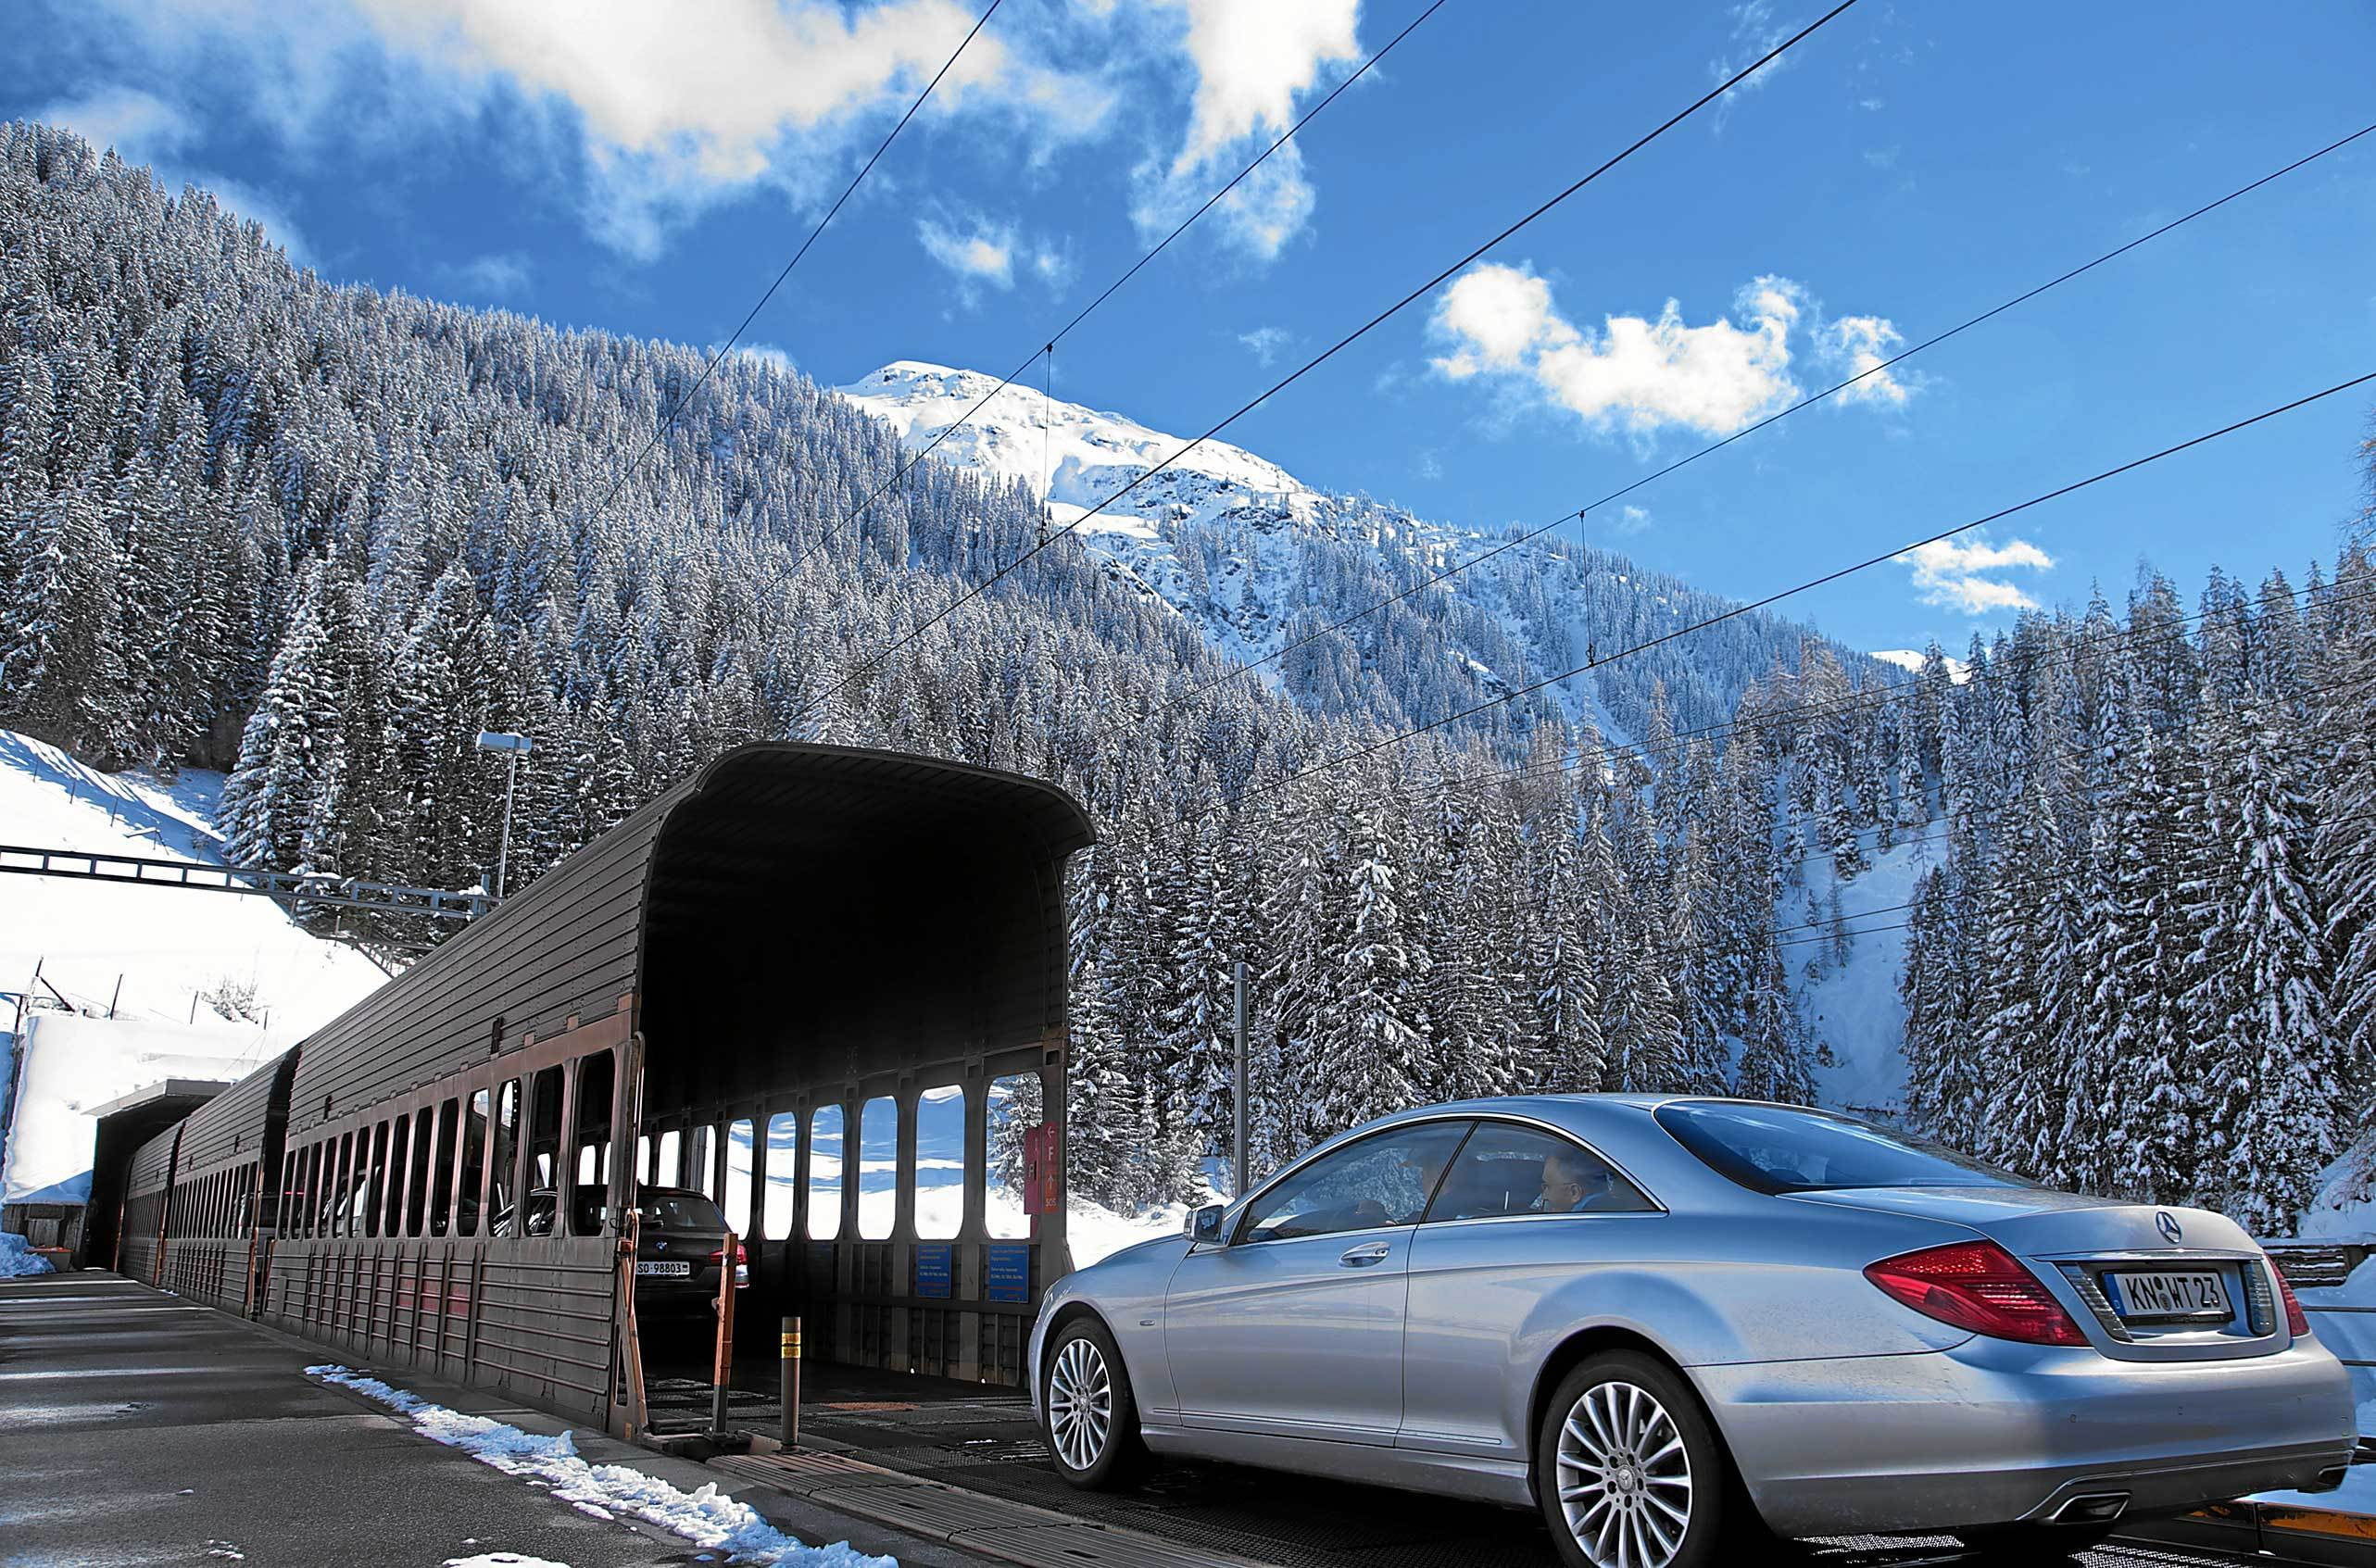 Car transporter - Vereina Tunnel - The quick way through the mountains